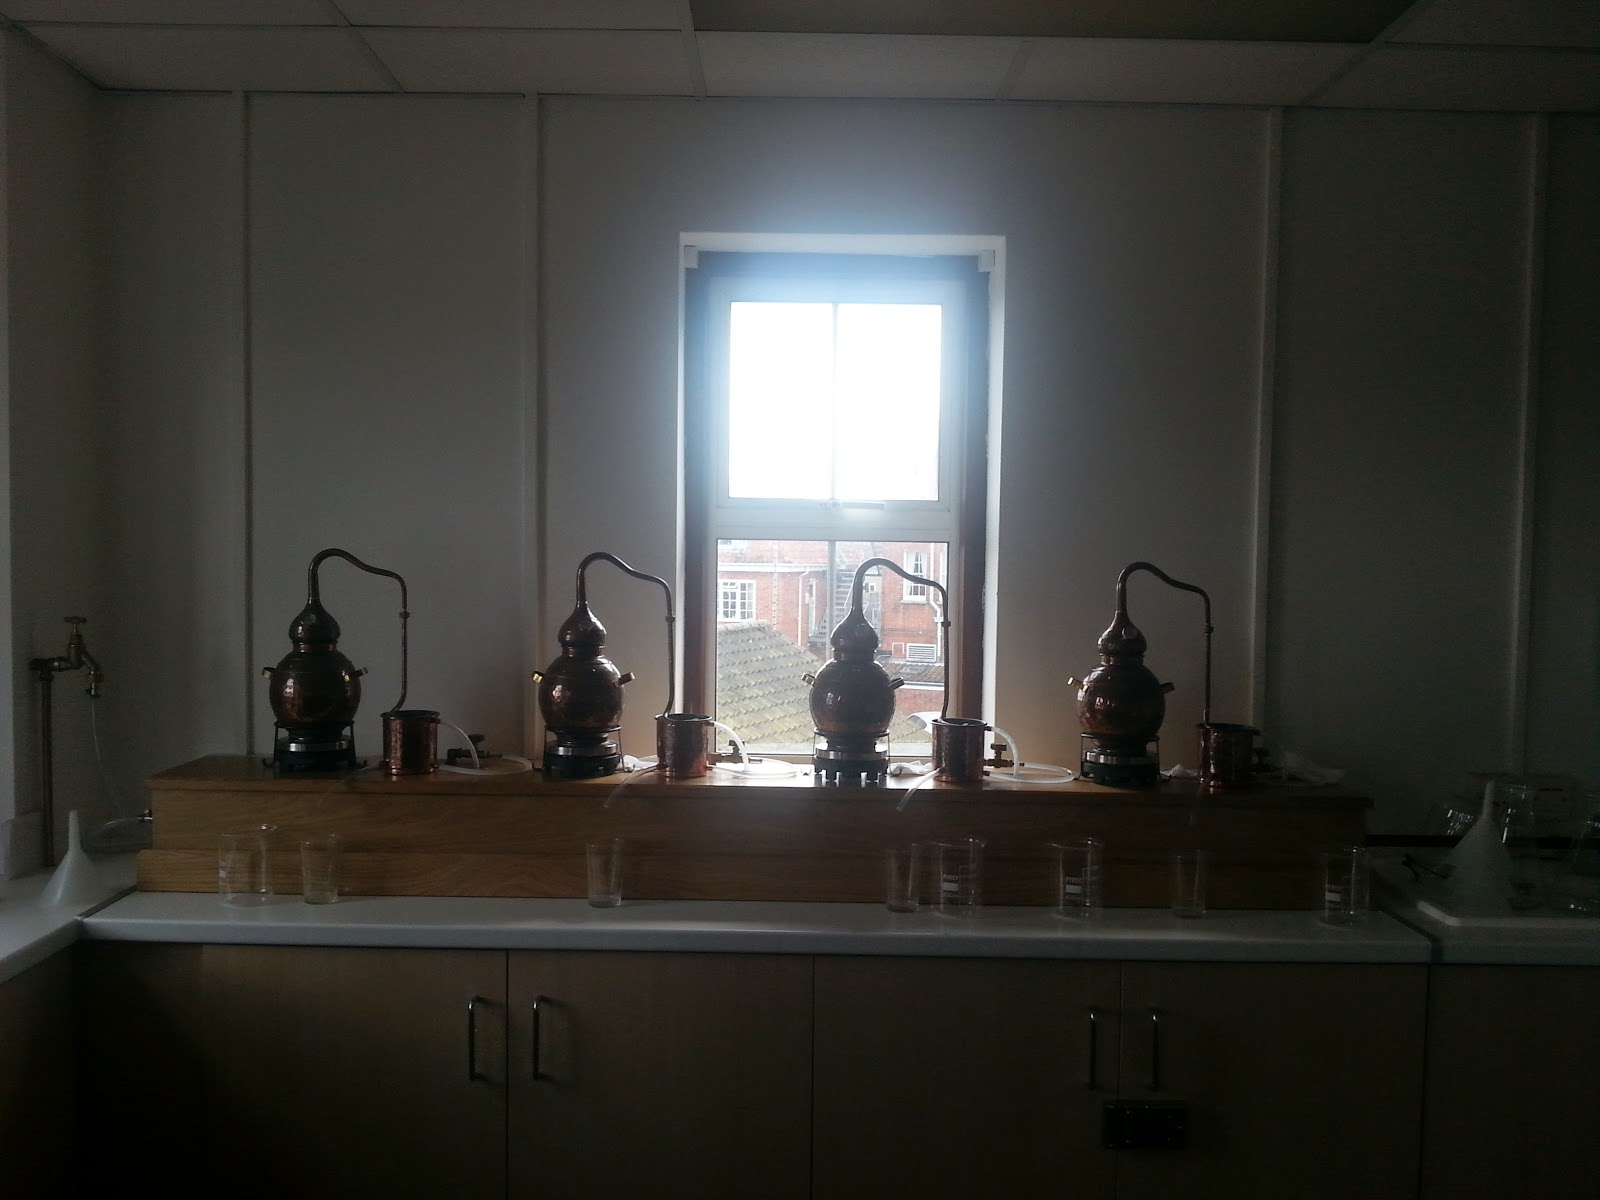 mini stills amager bryghus lighting set